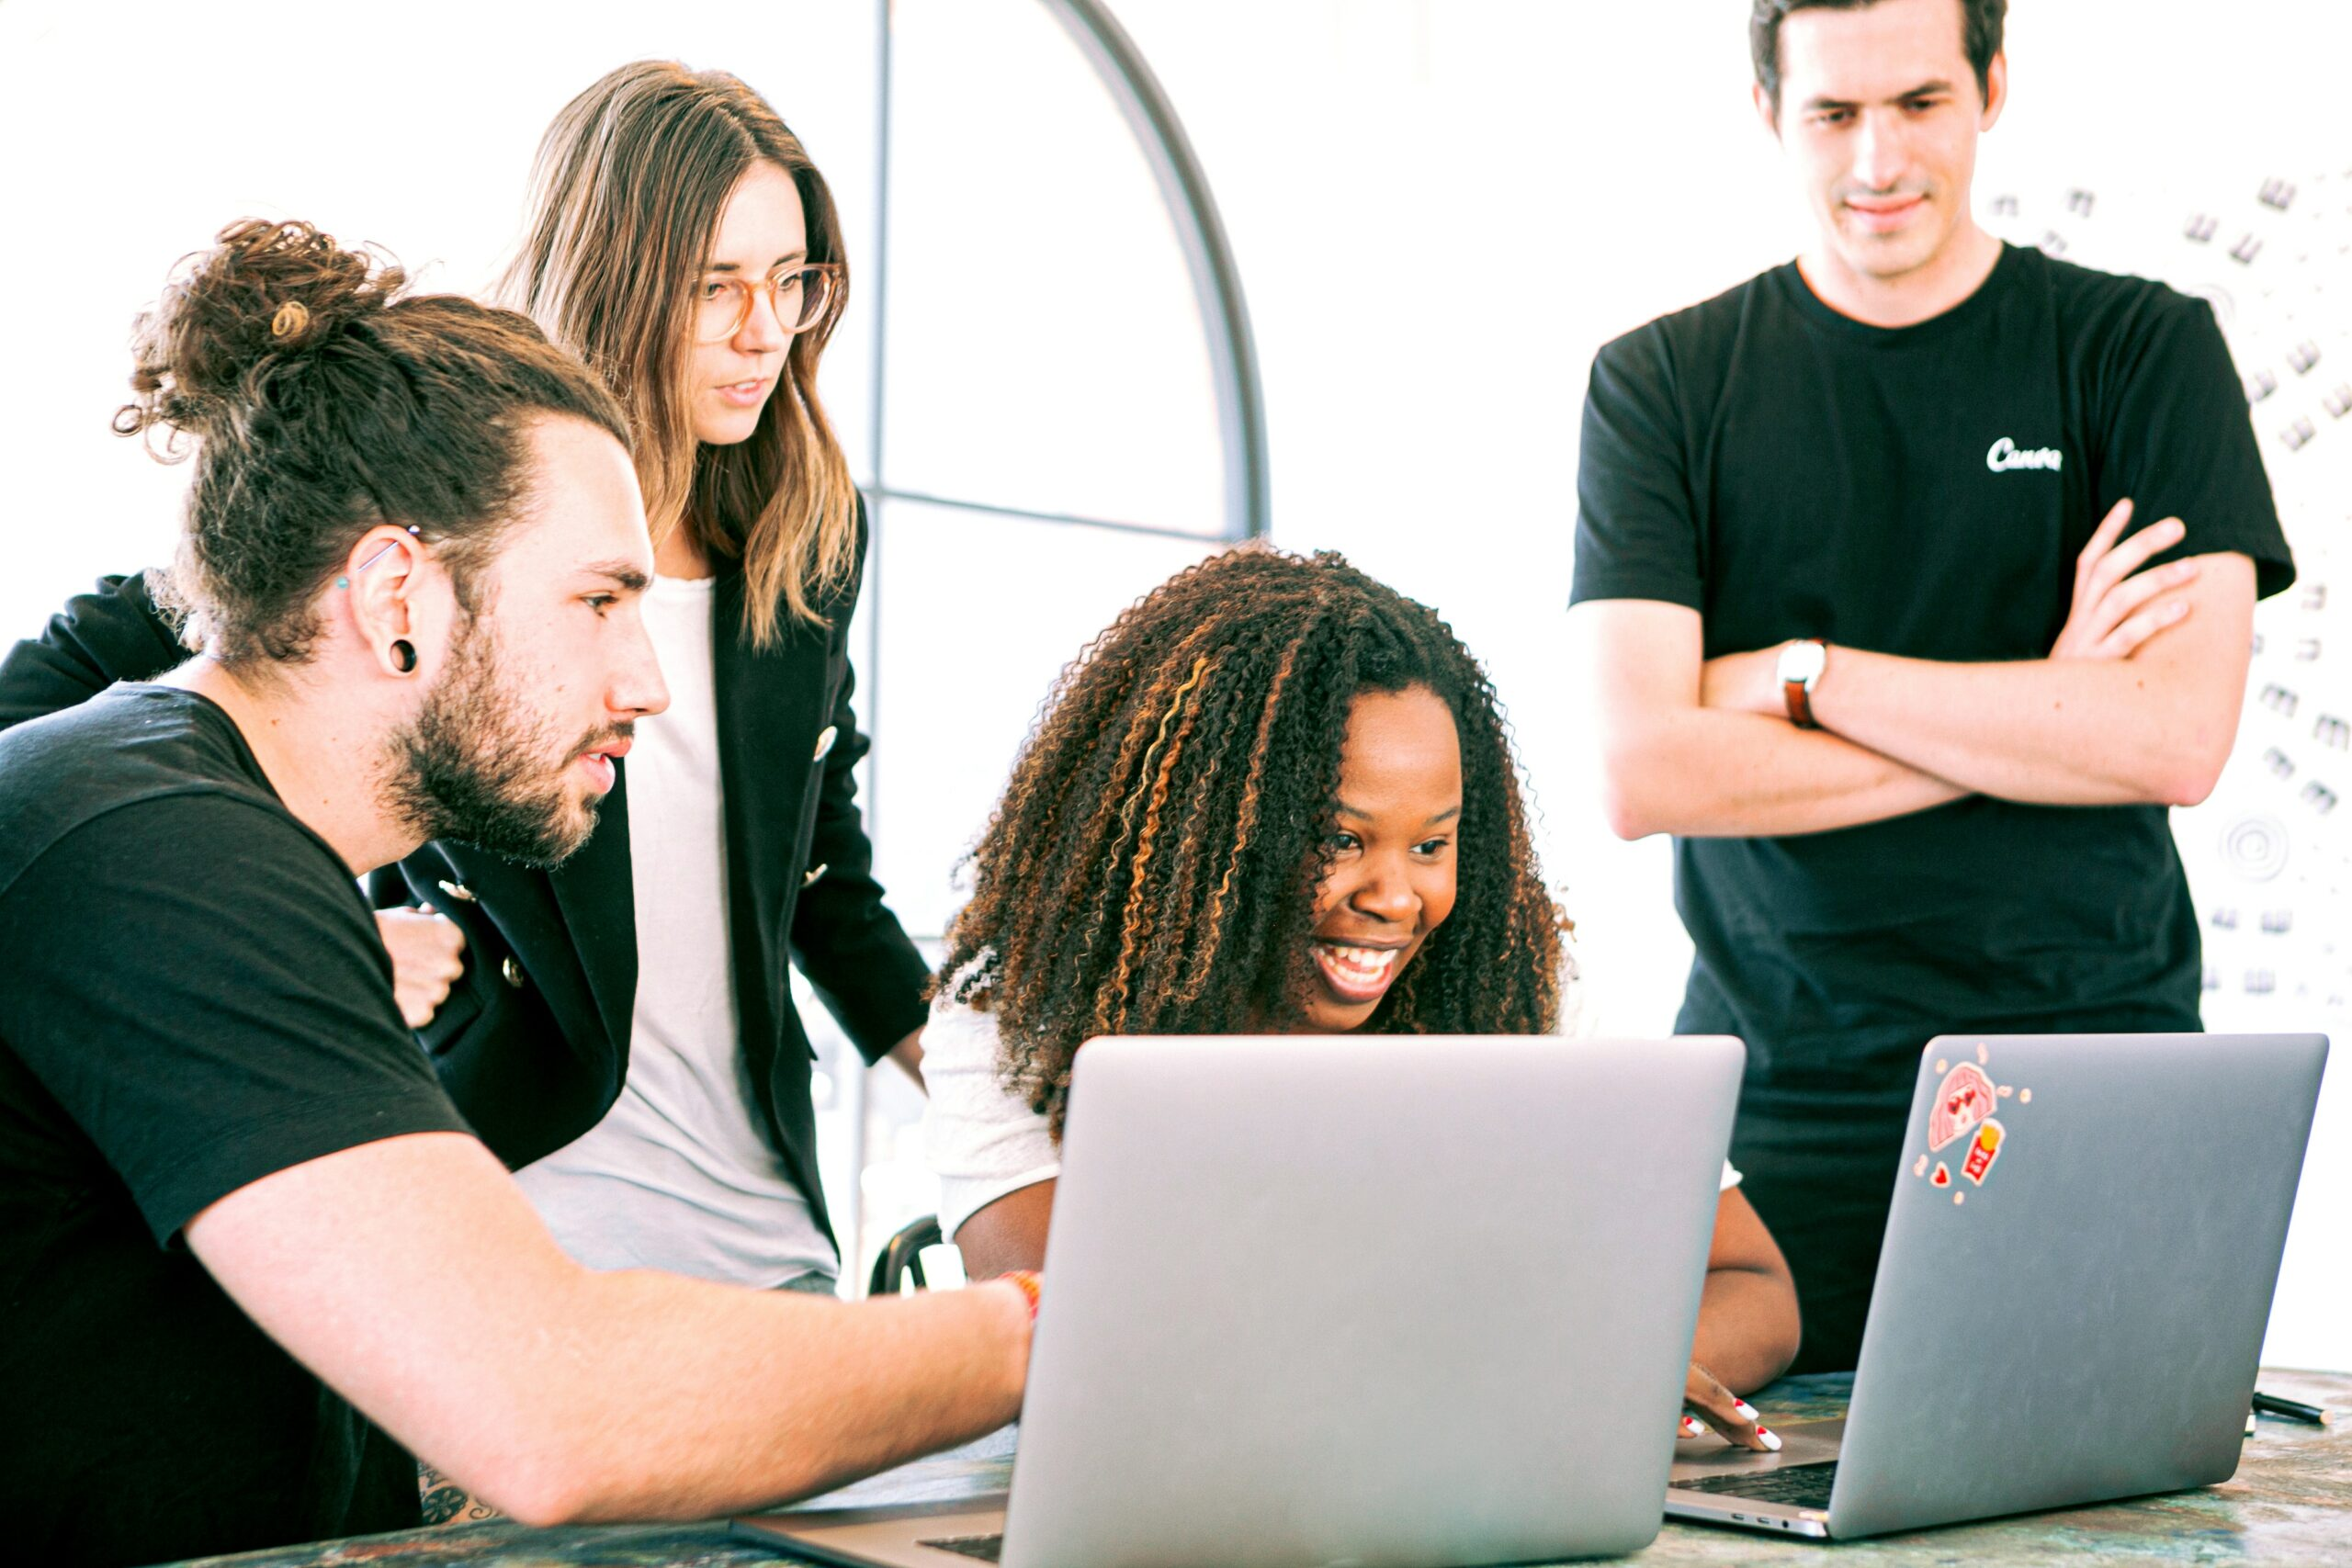 Team of coworkers searching online